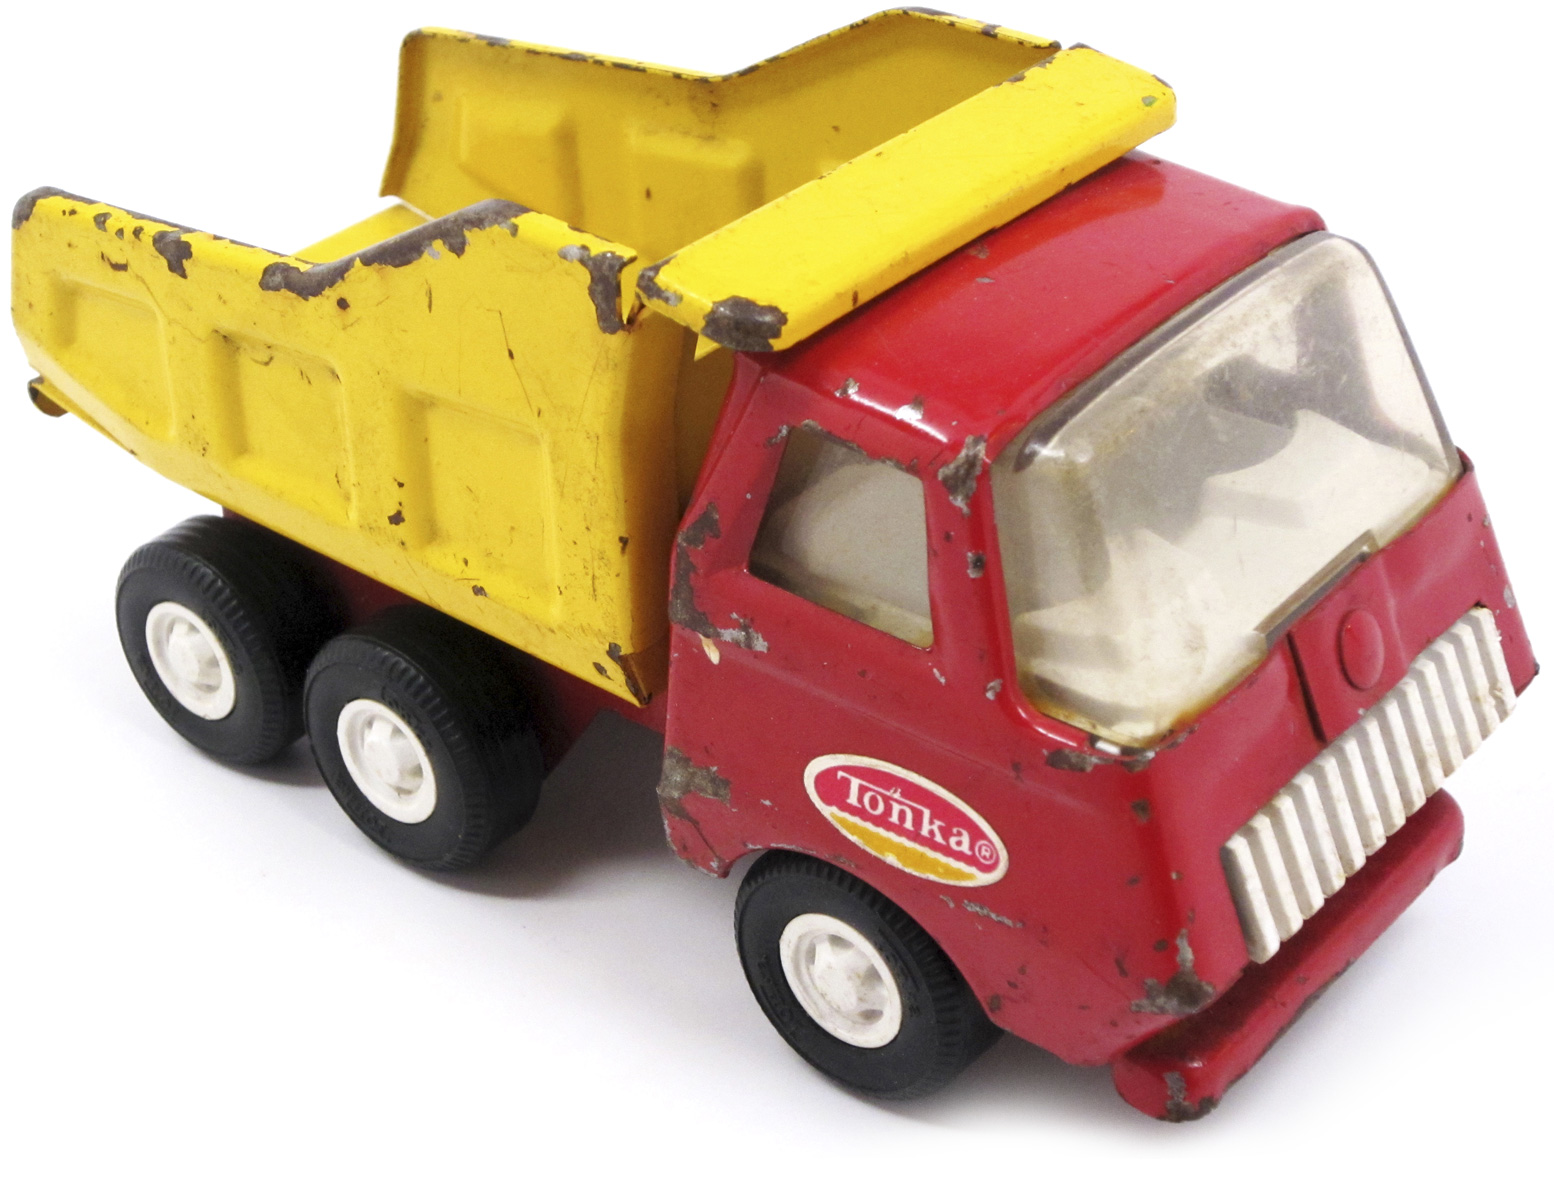 The Value of Antique Tonka Toys